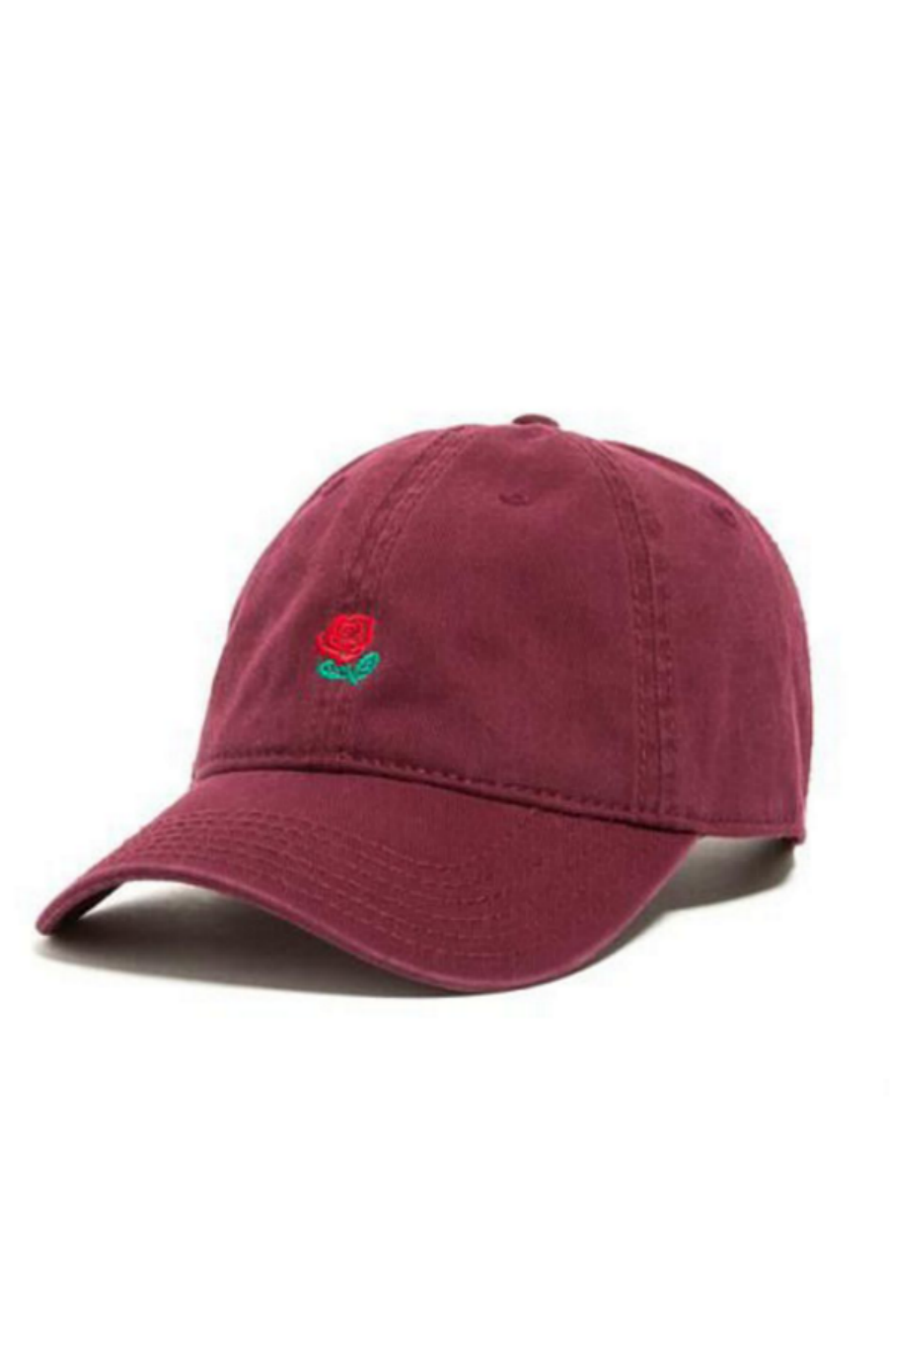 Rose Embroidered Burgundy Hat